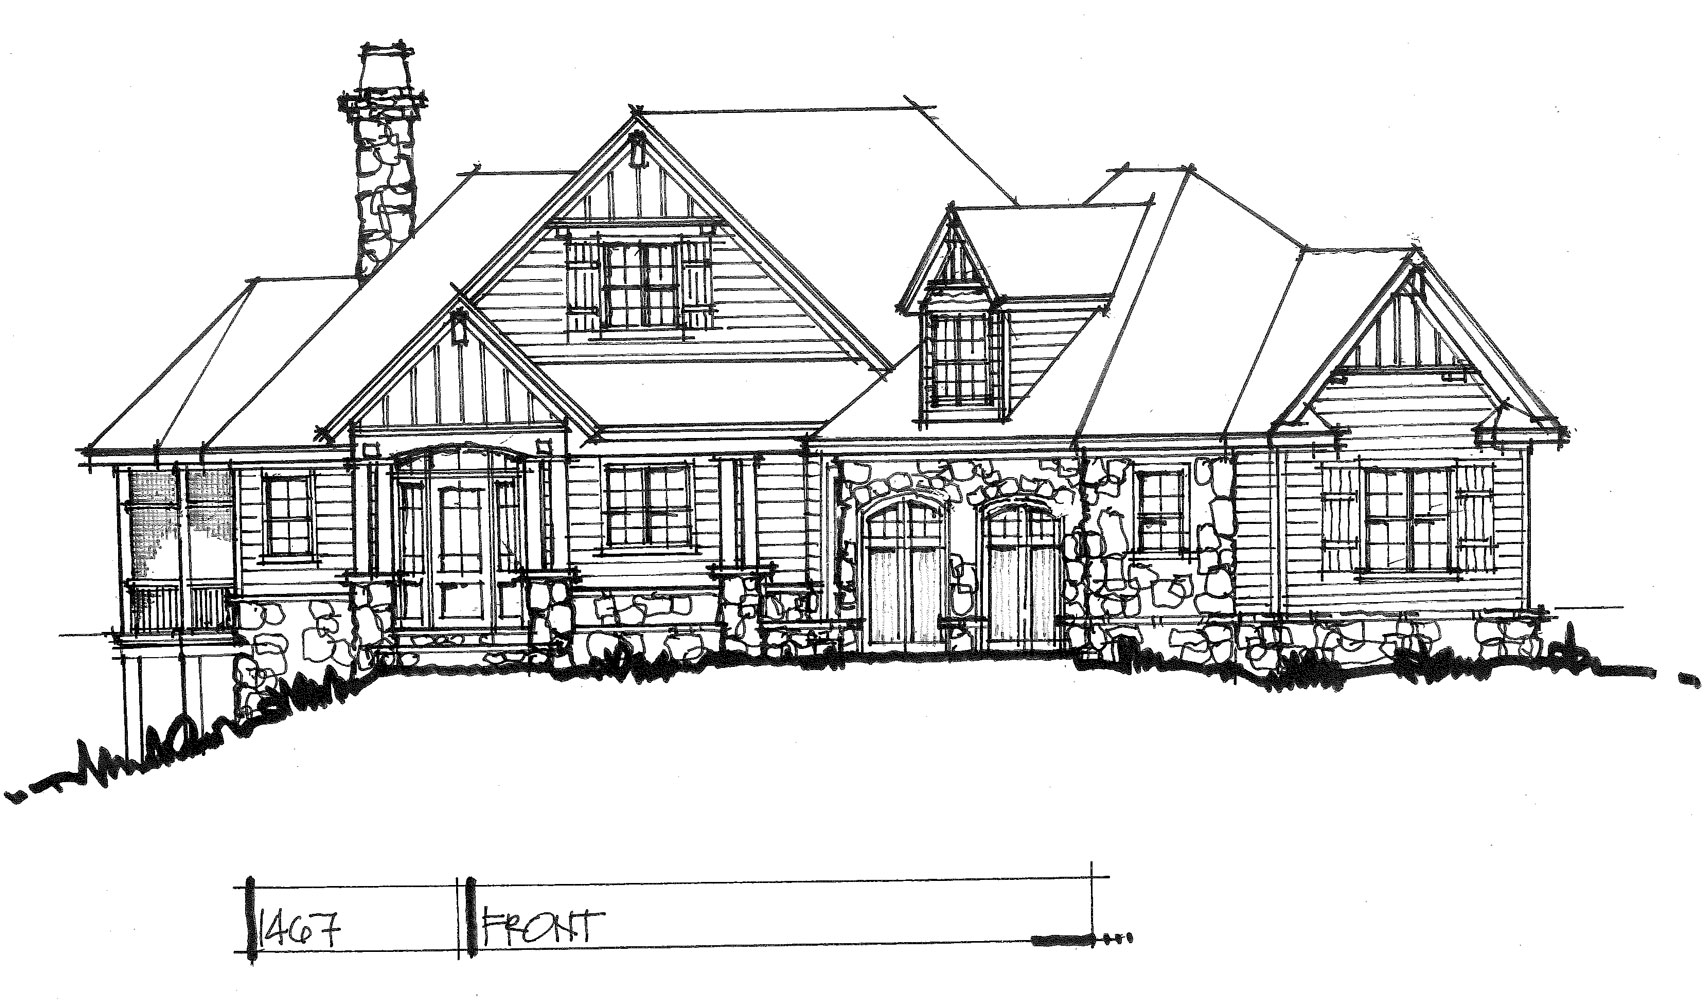 Check out the front elevation of house plan 1467.